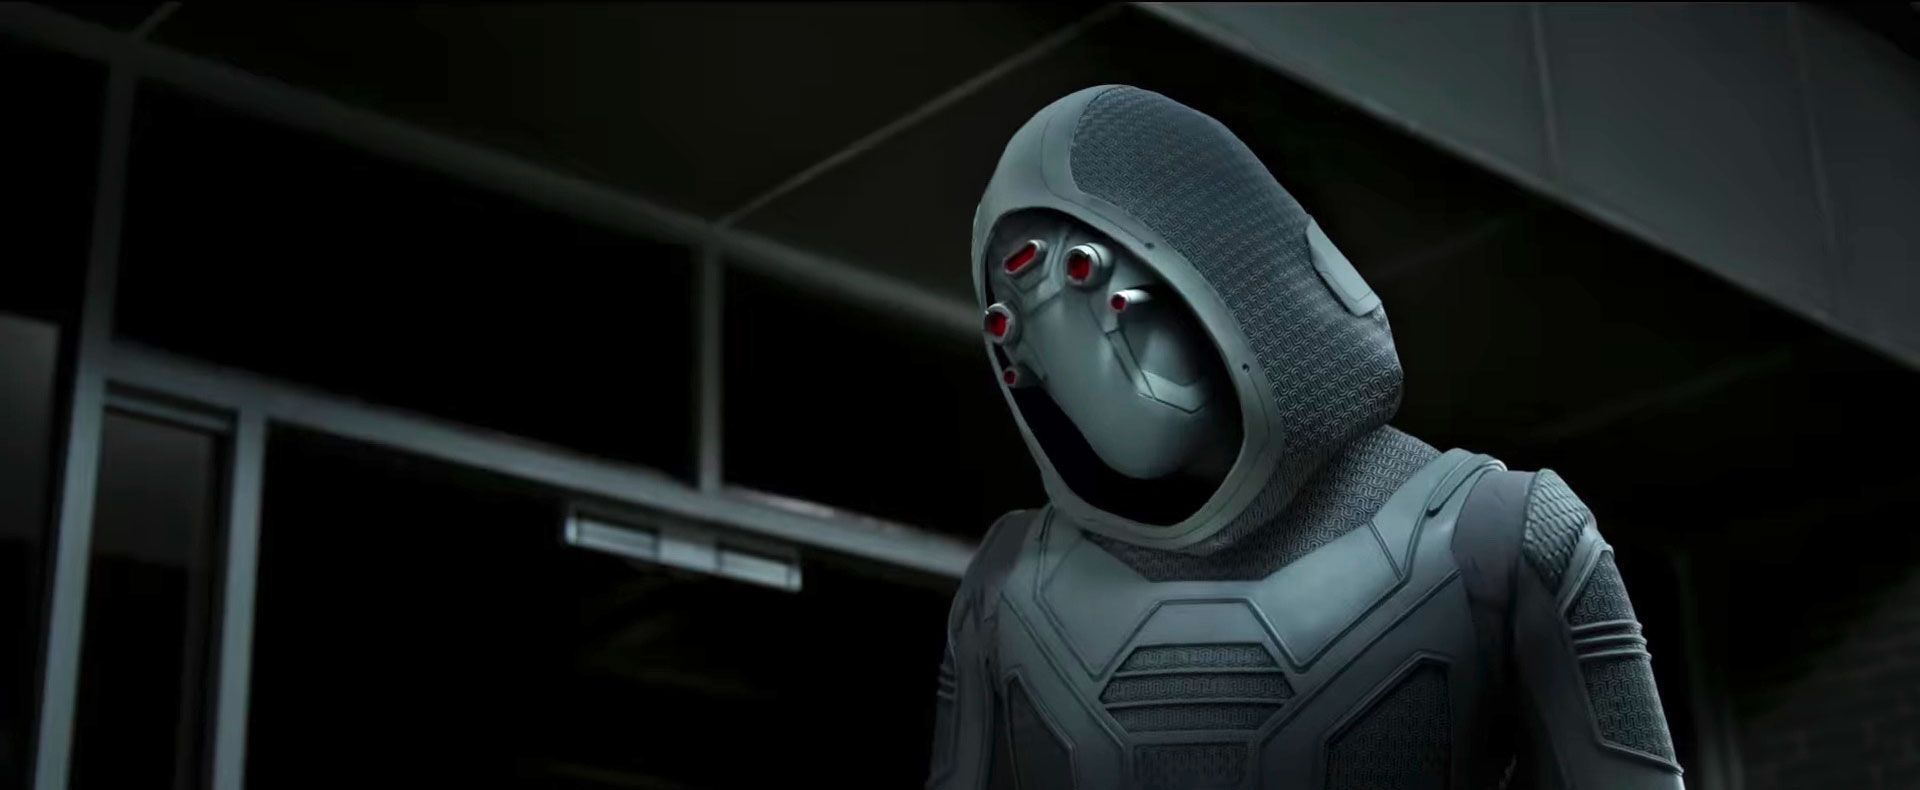 Ant-Man and The Wasp director explains why villain Ghost is a woman